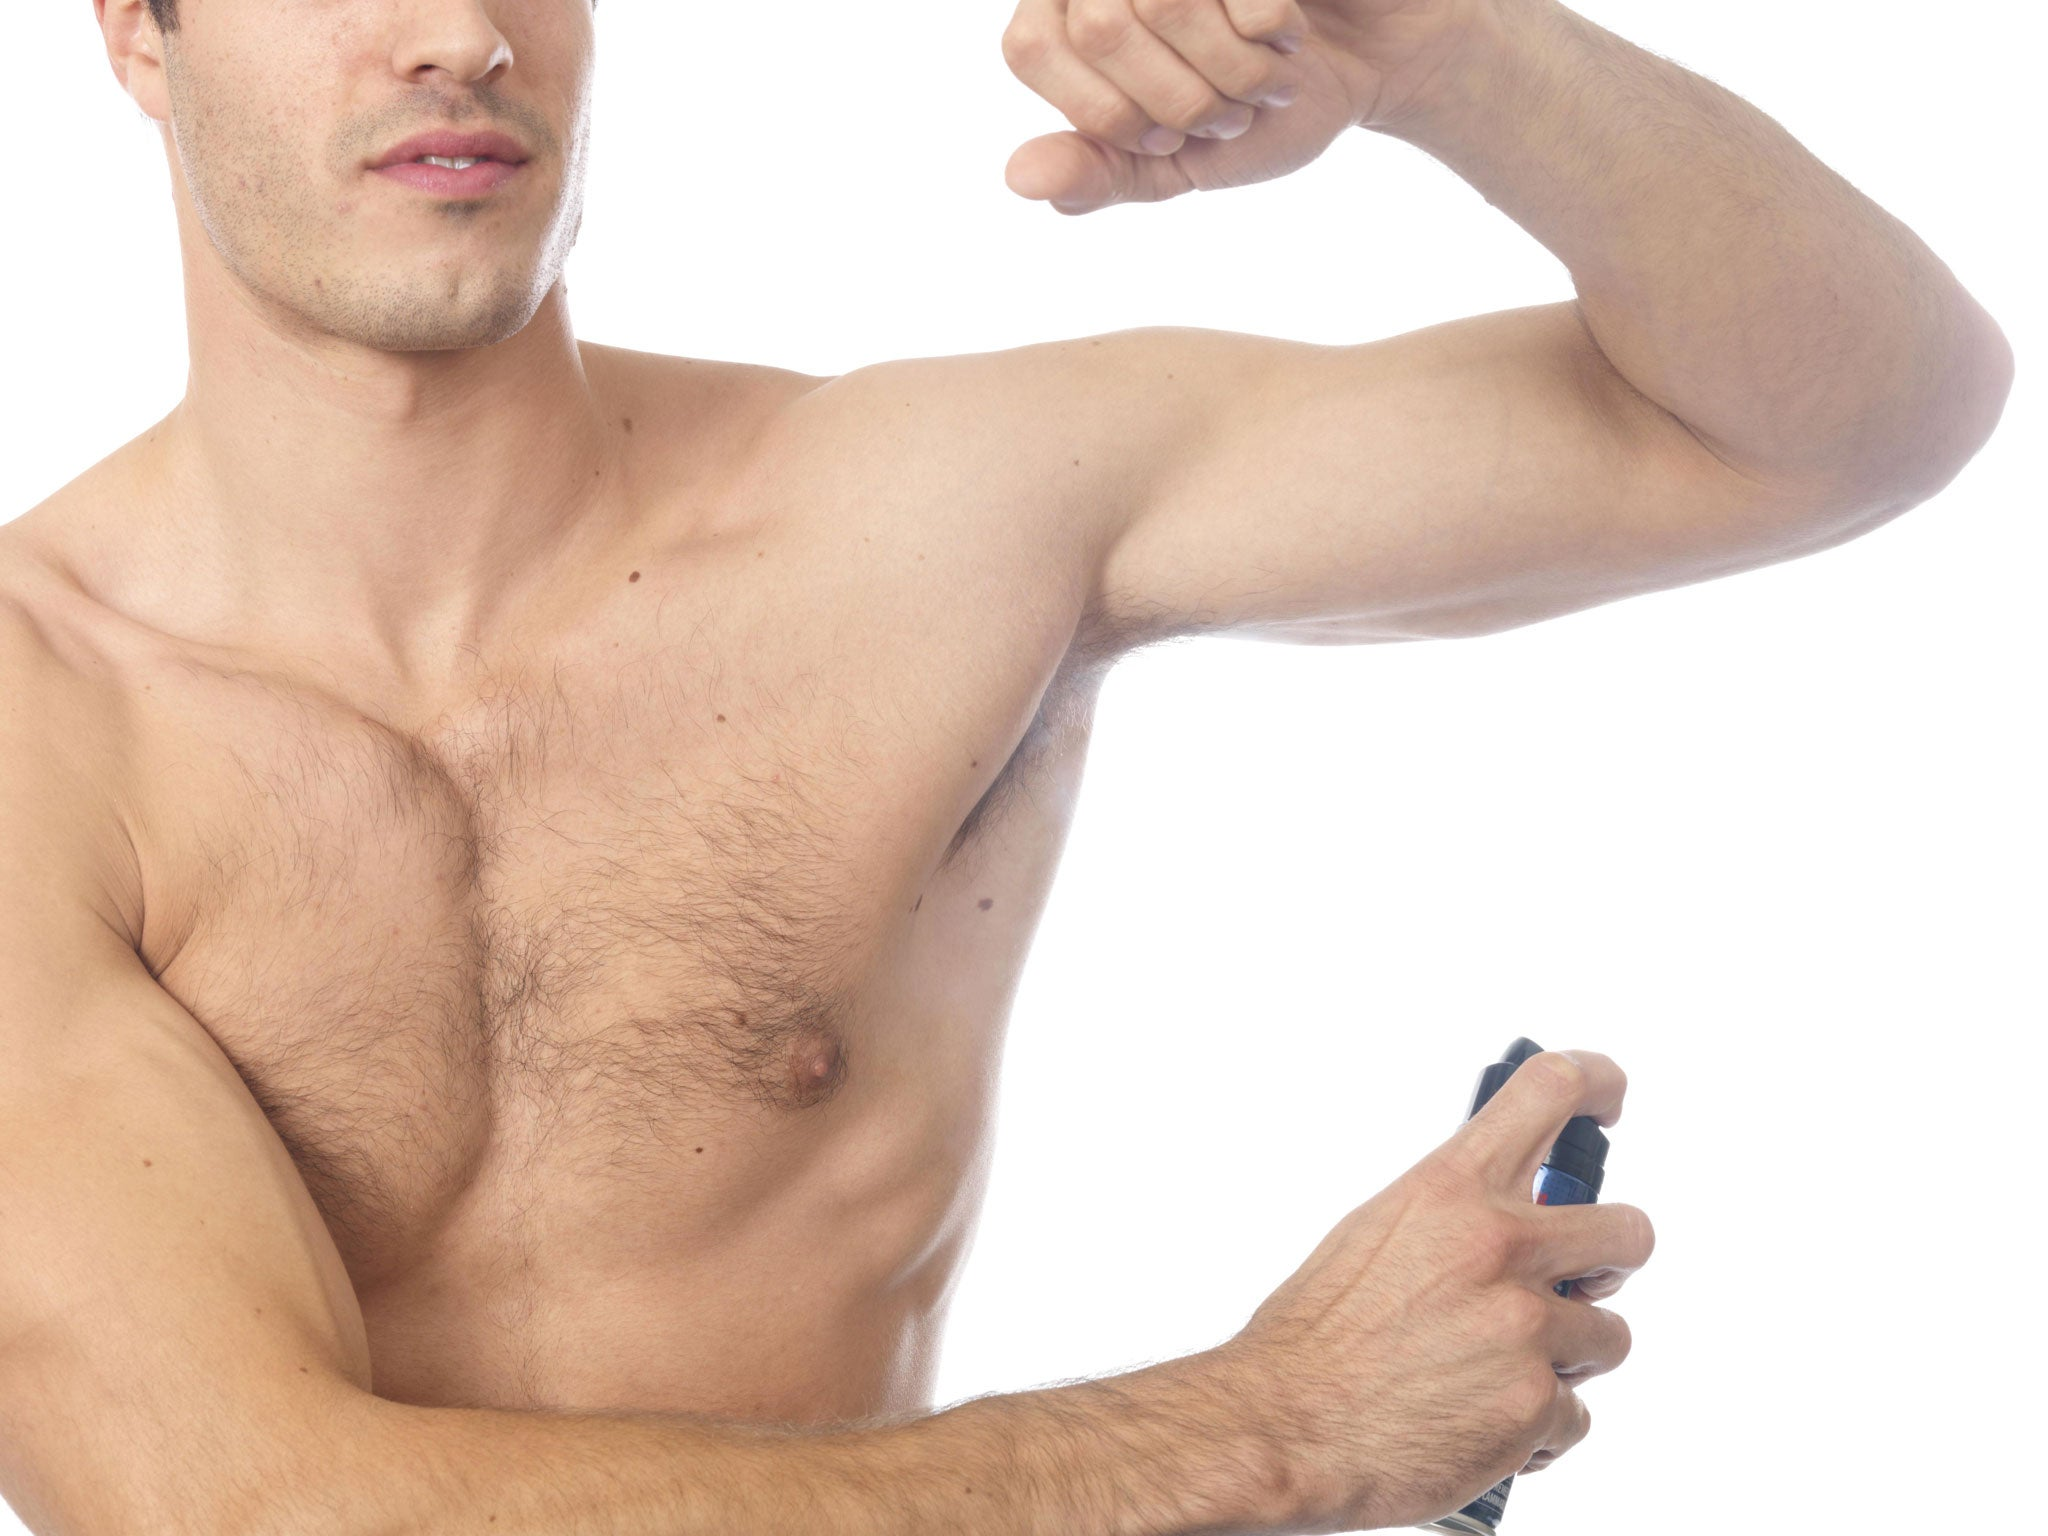 Deodorant could be allowing more harmful bacteria to grow in